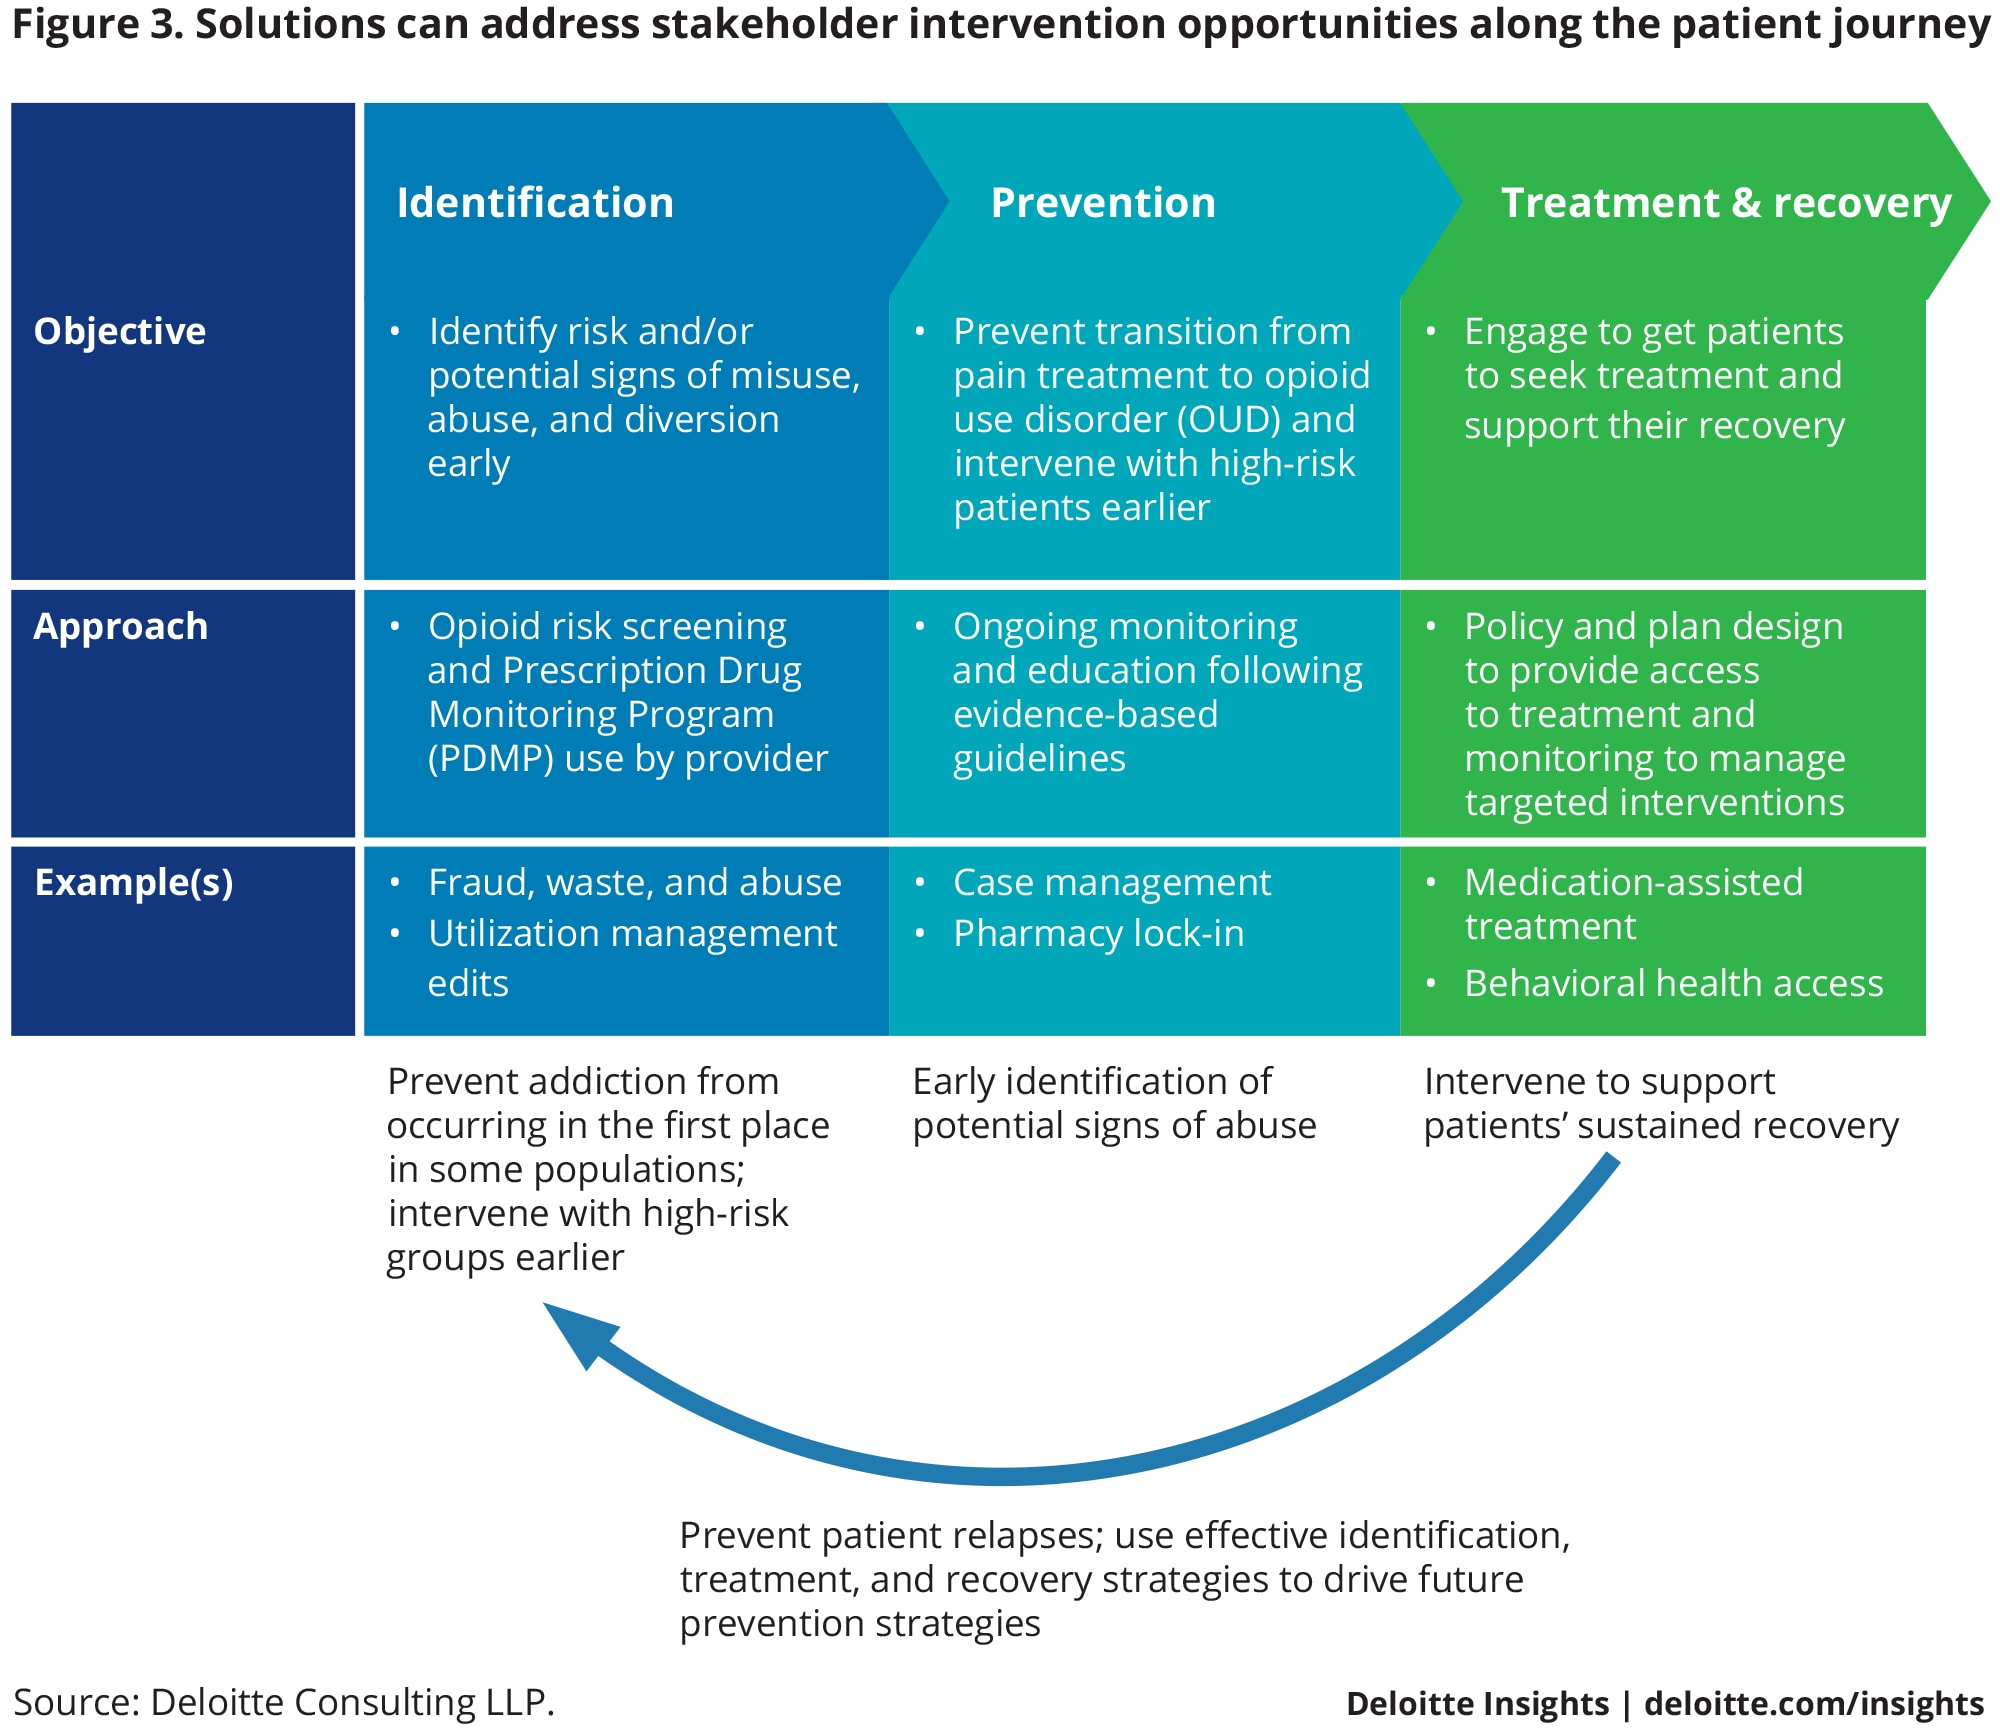 Solutions can address stakeholder intervention opportunities along the patient journey